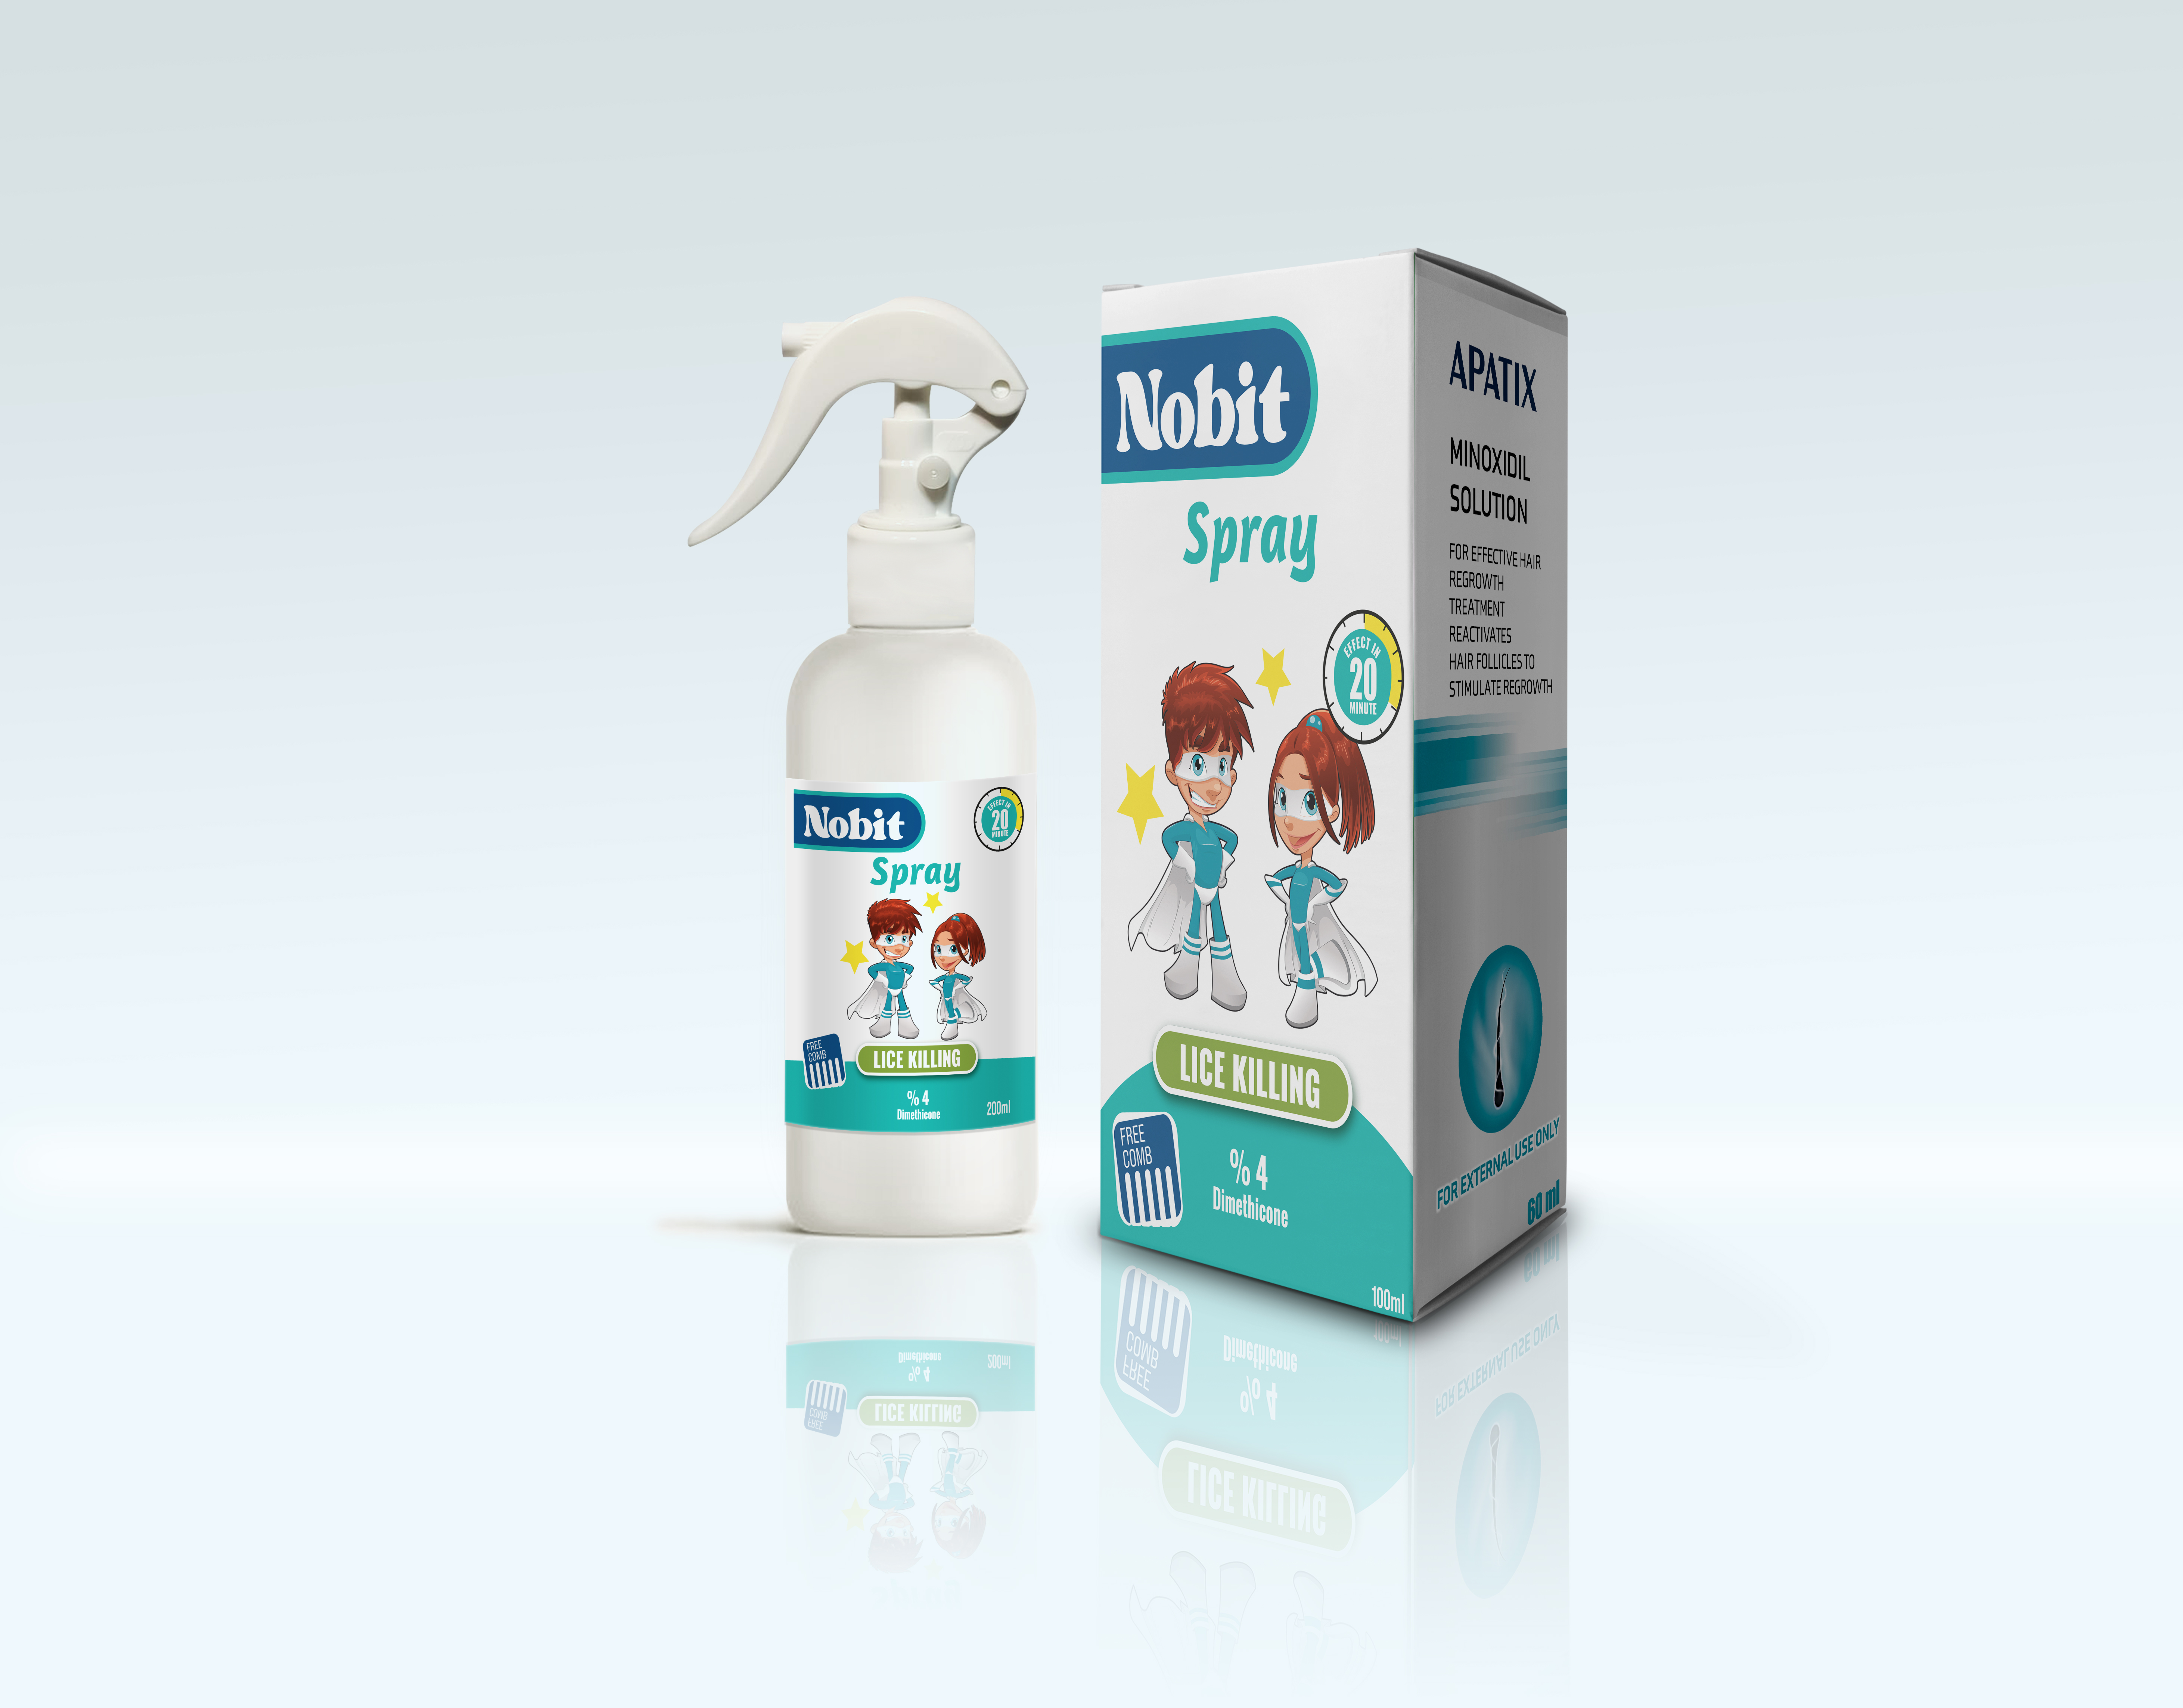 Nobit spray